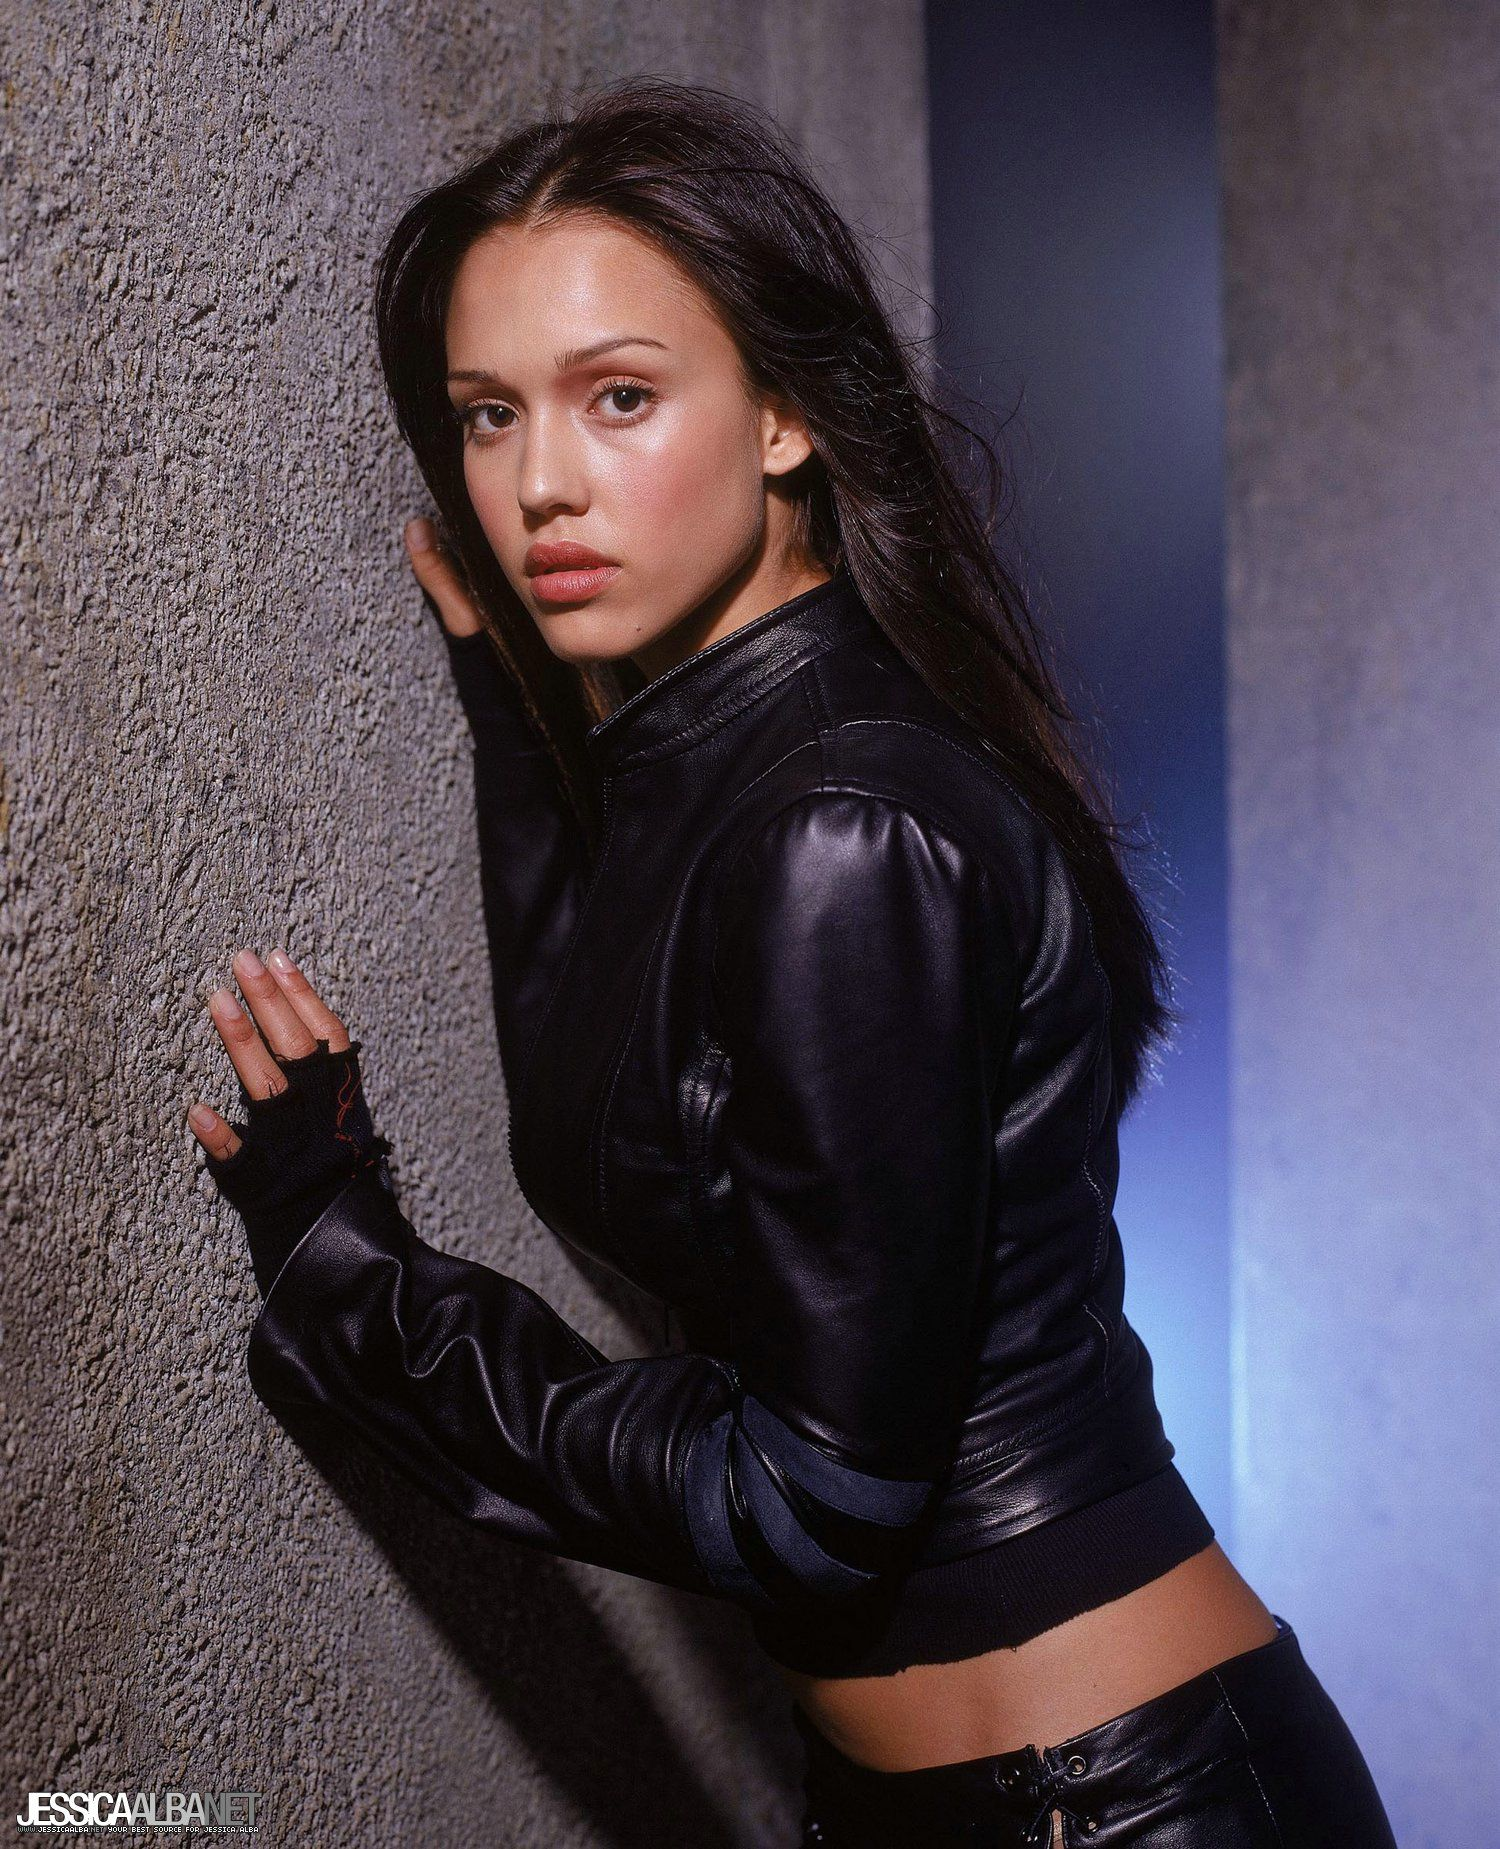 Jessica Alba Dark Angel Pictures 5 Hd Wallpapers Young Jessica